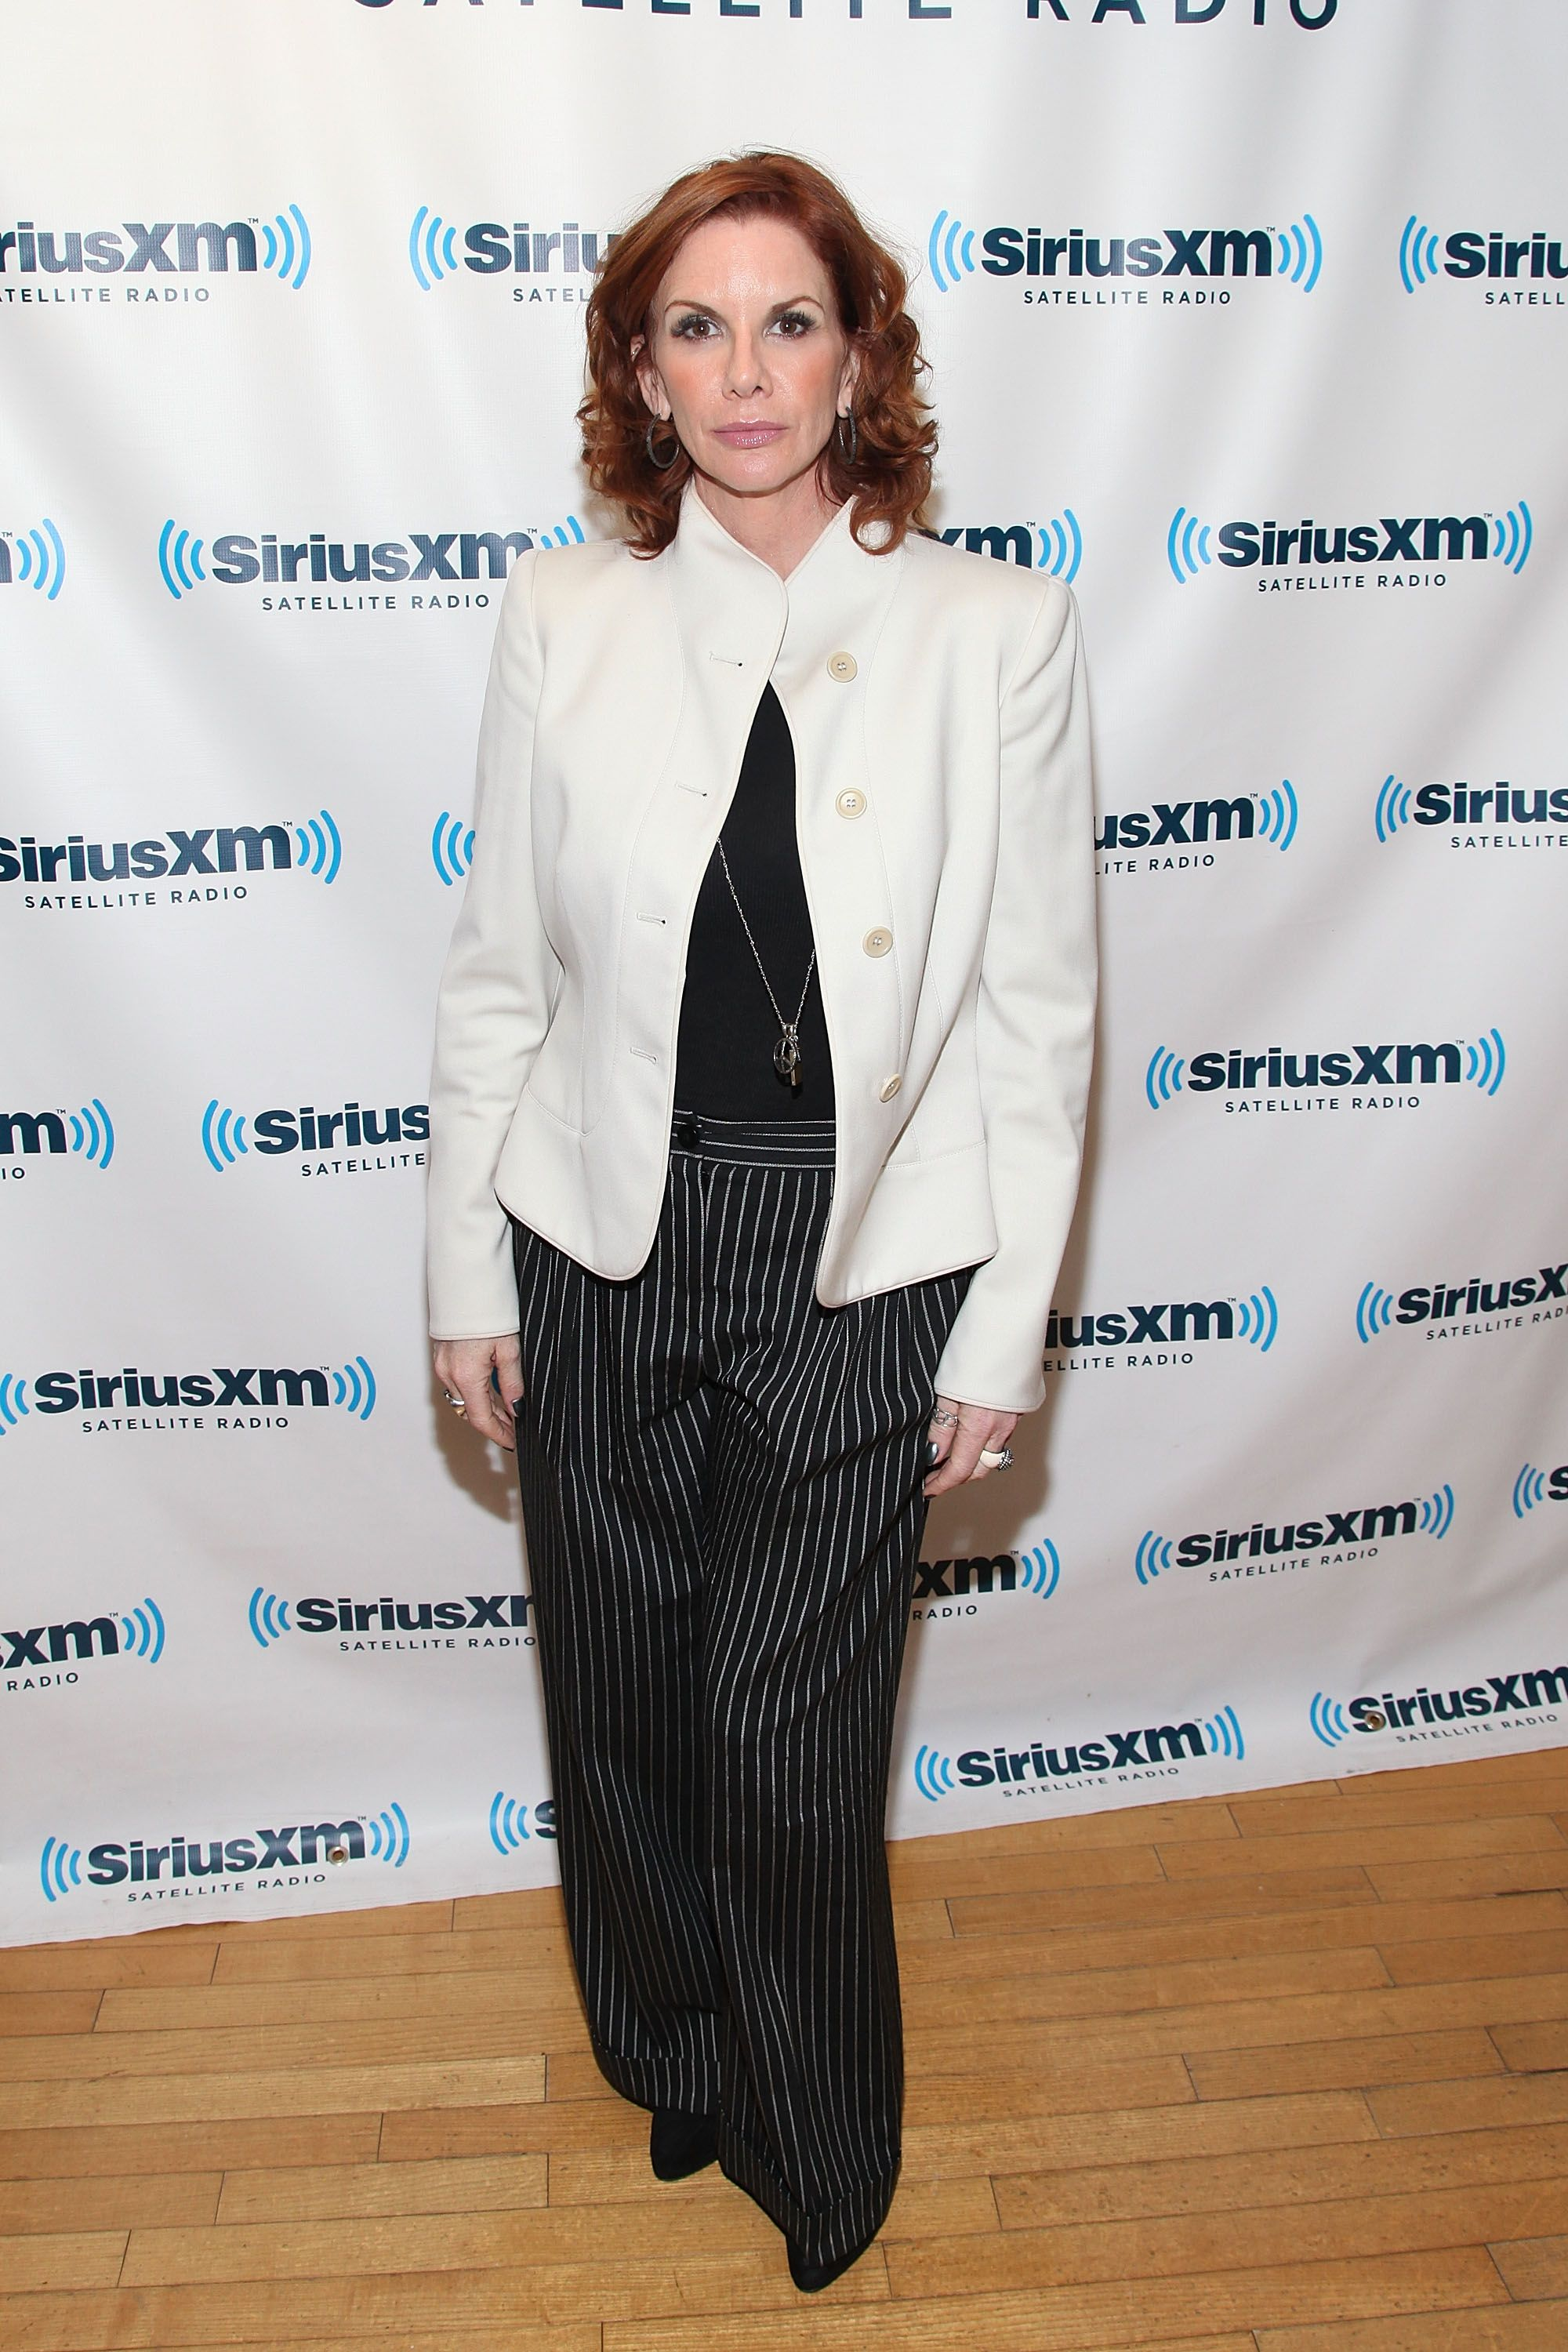 Melissa Gilbert visits the SiriusXM Studio on December 8, 2011, in New York City | Photo: Taylor Hill/Getty Images